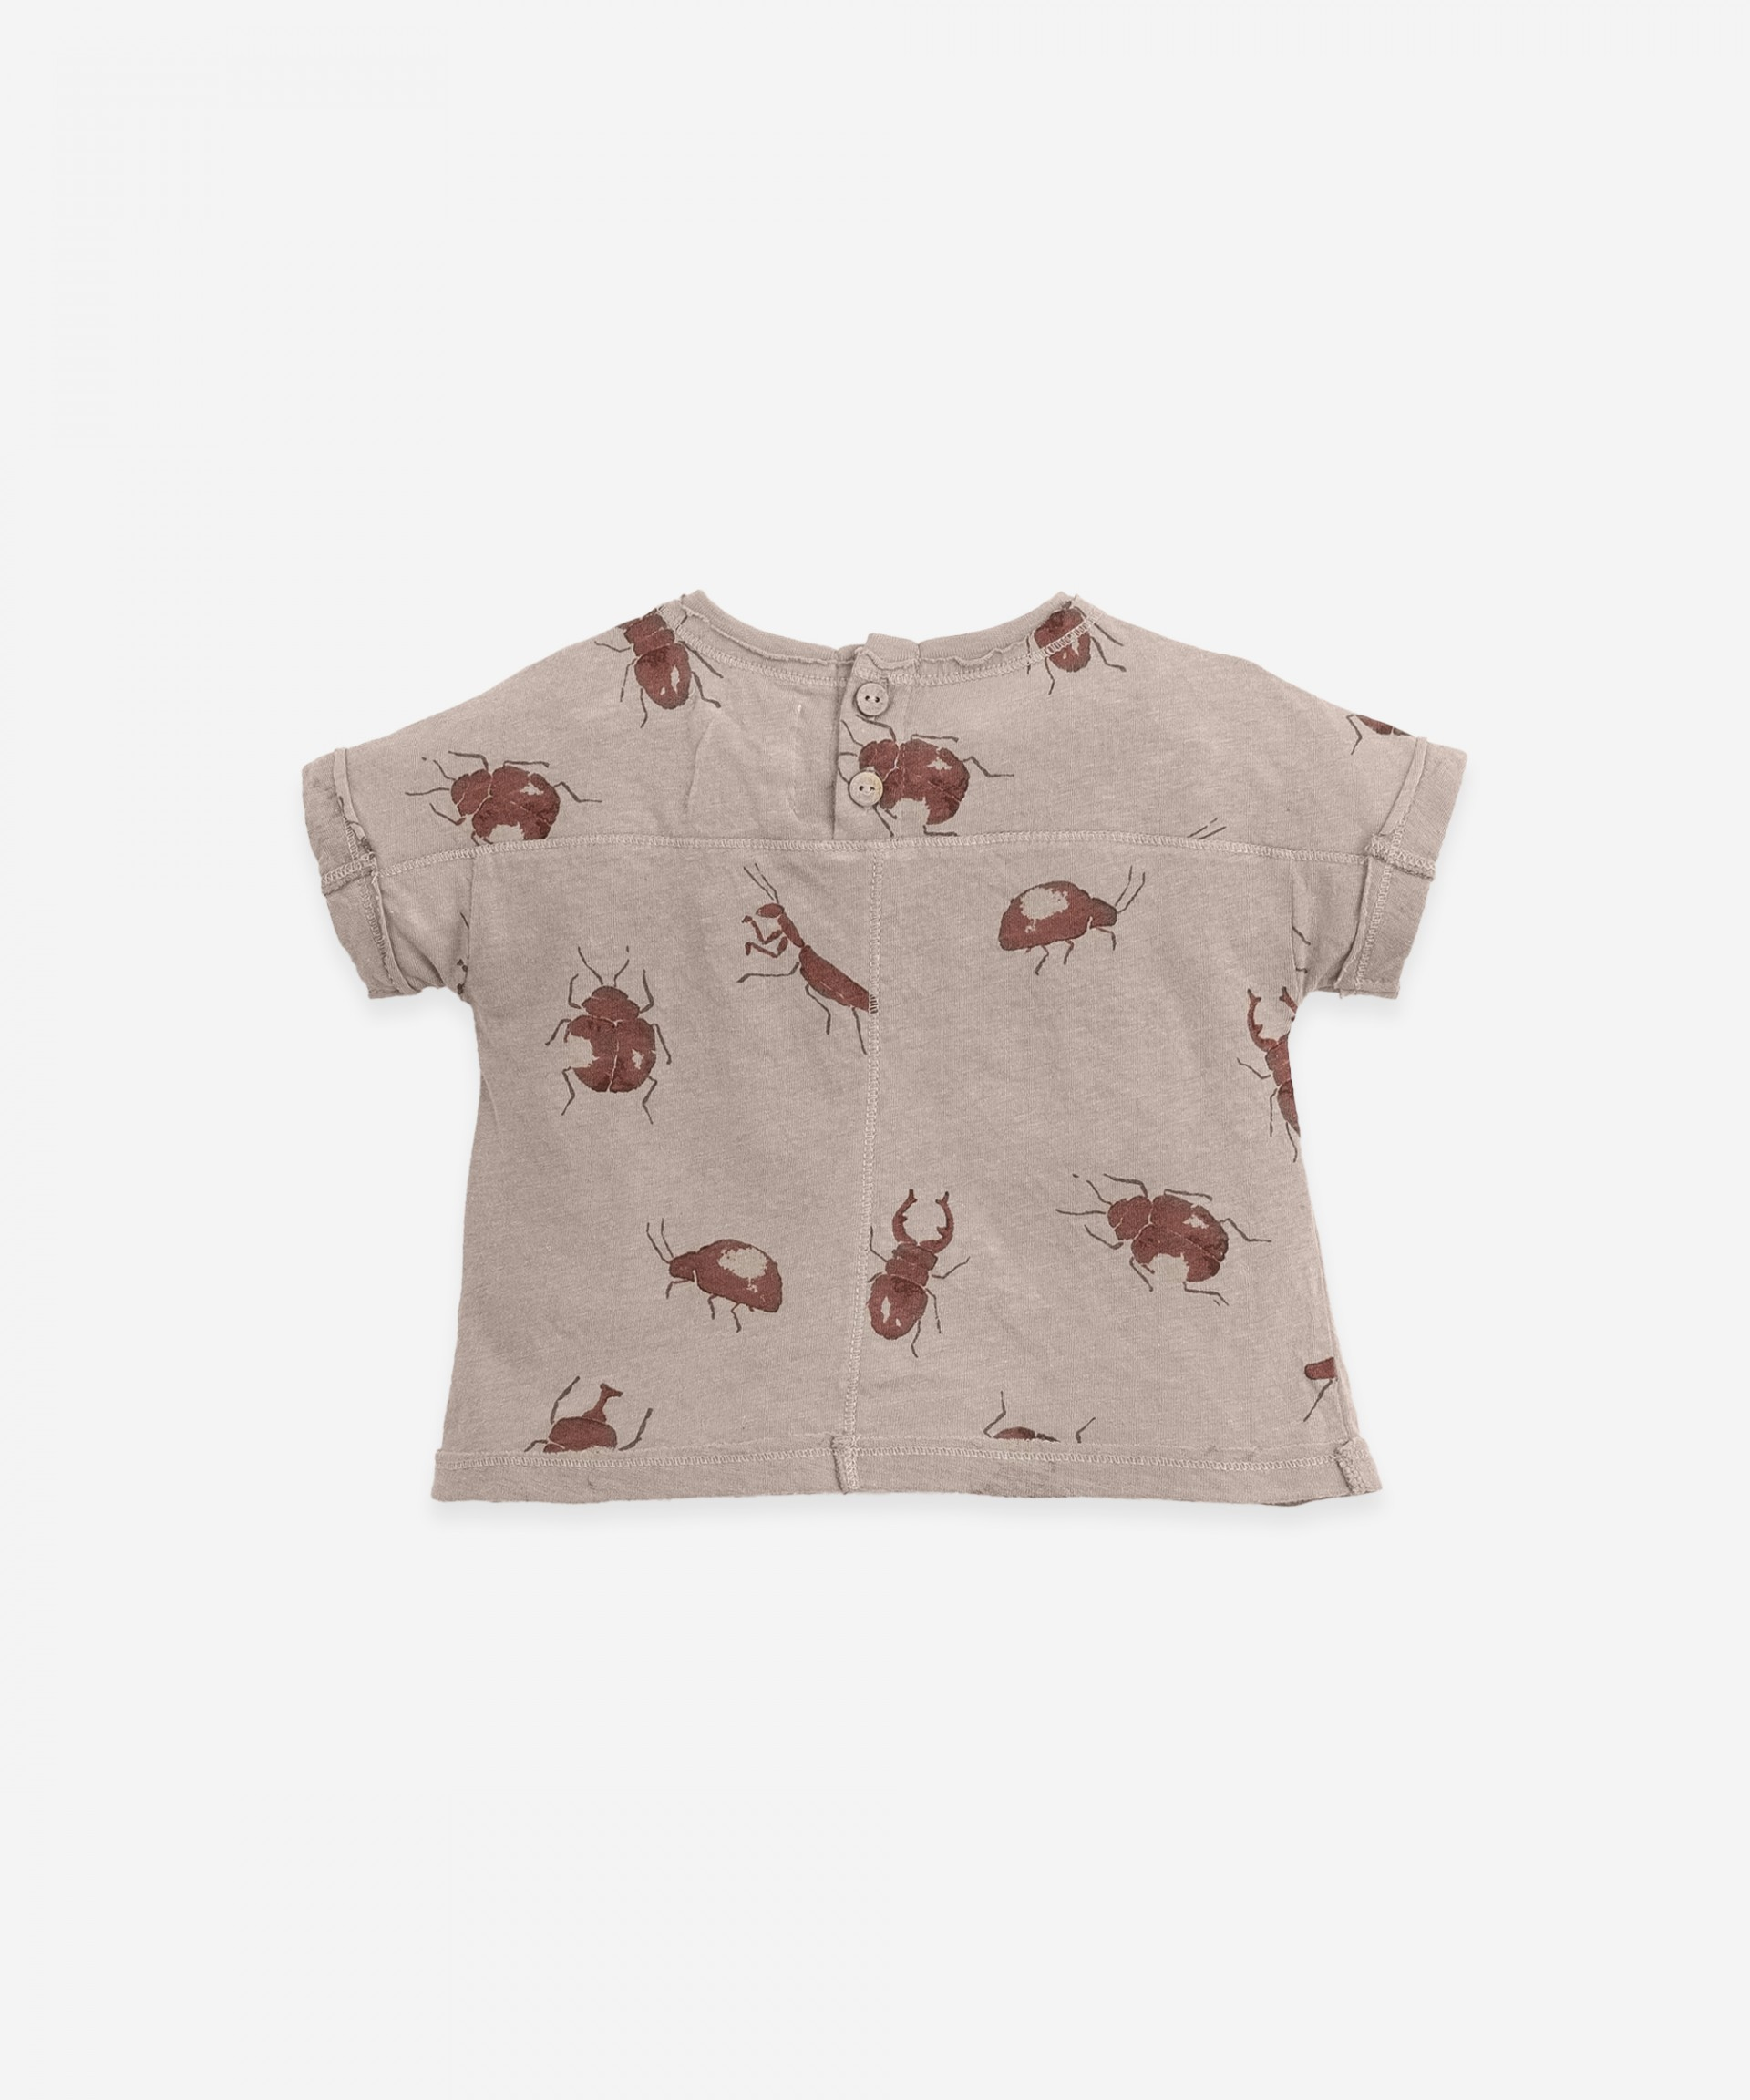 T-shirt in organic cotton and linen | Botany